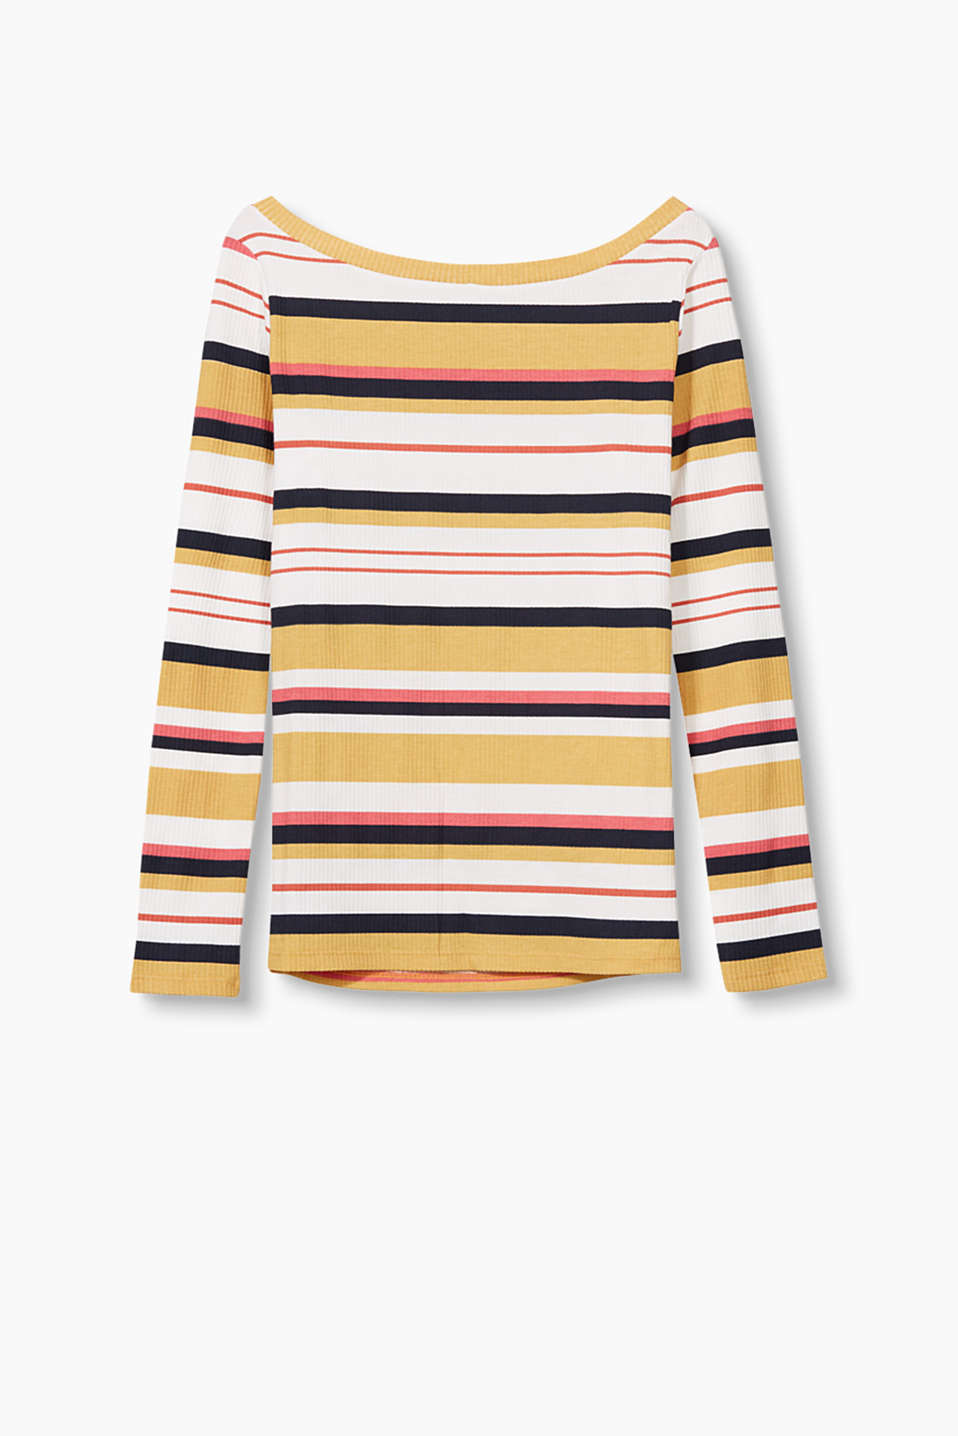 Trendy striped long sleeve top in elasticated ribbed jersey with a wide round neckline